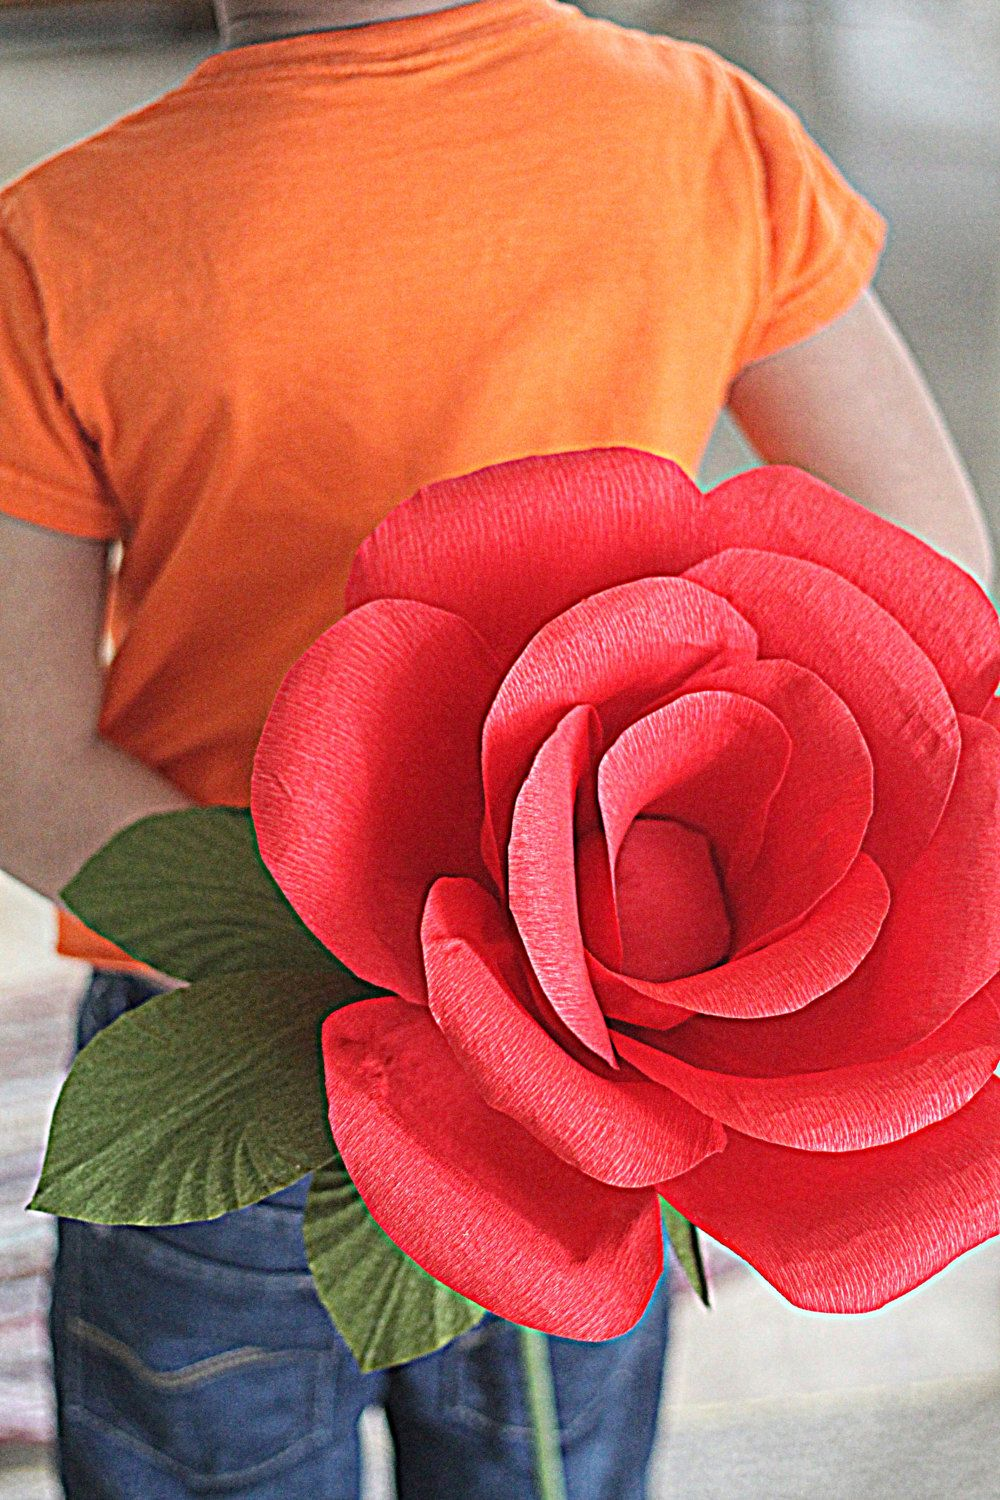 Large paper flowerpaper rose for wedding photography prop